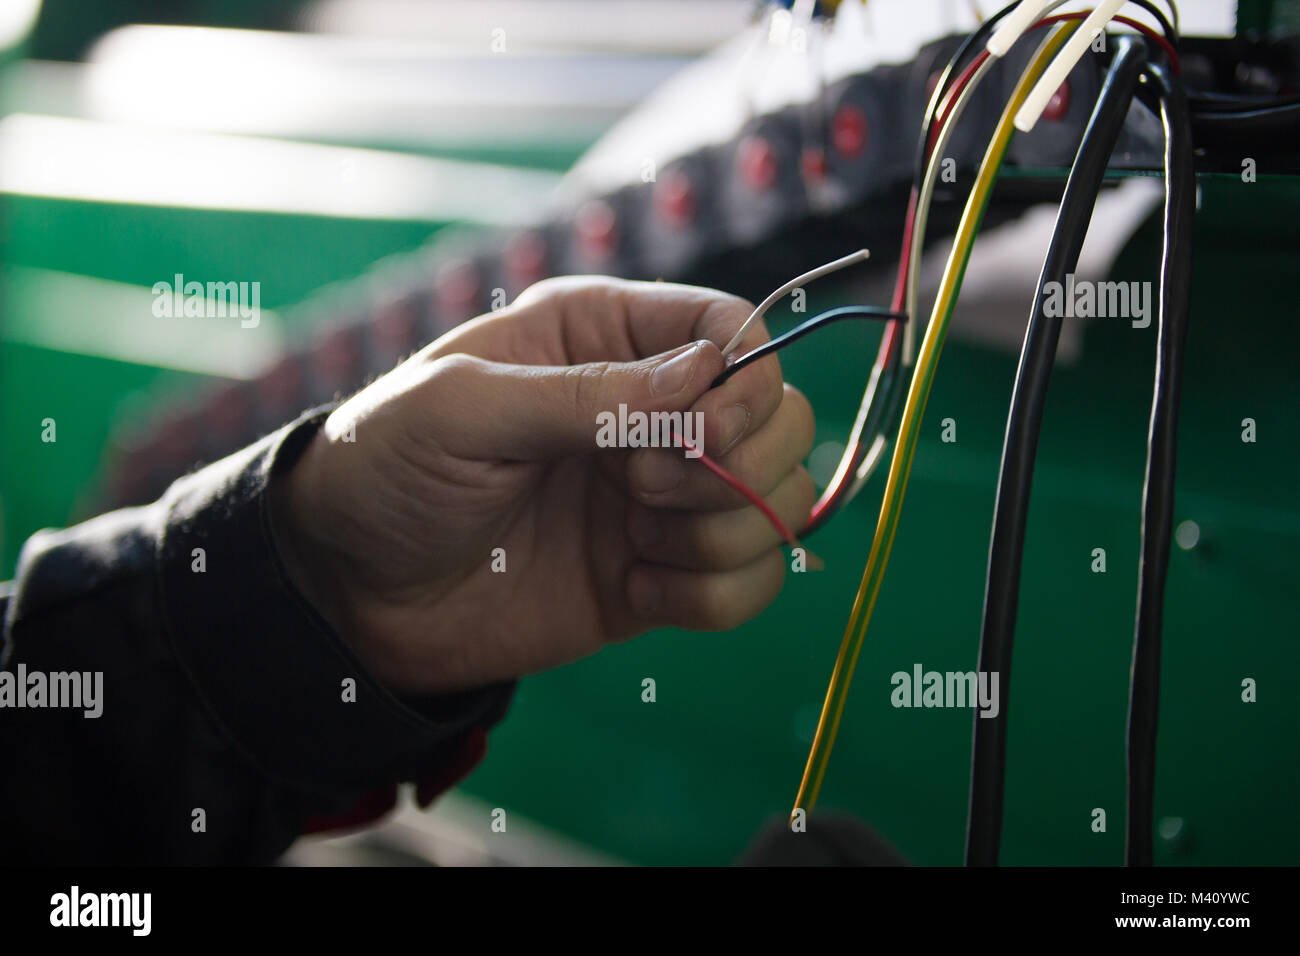 Electrician works with hands of electric - Stock Image